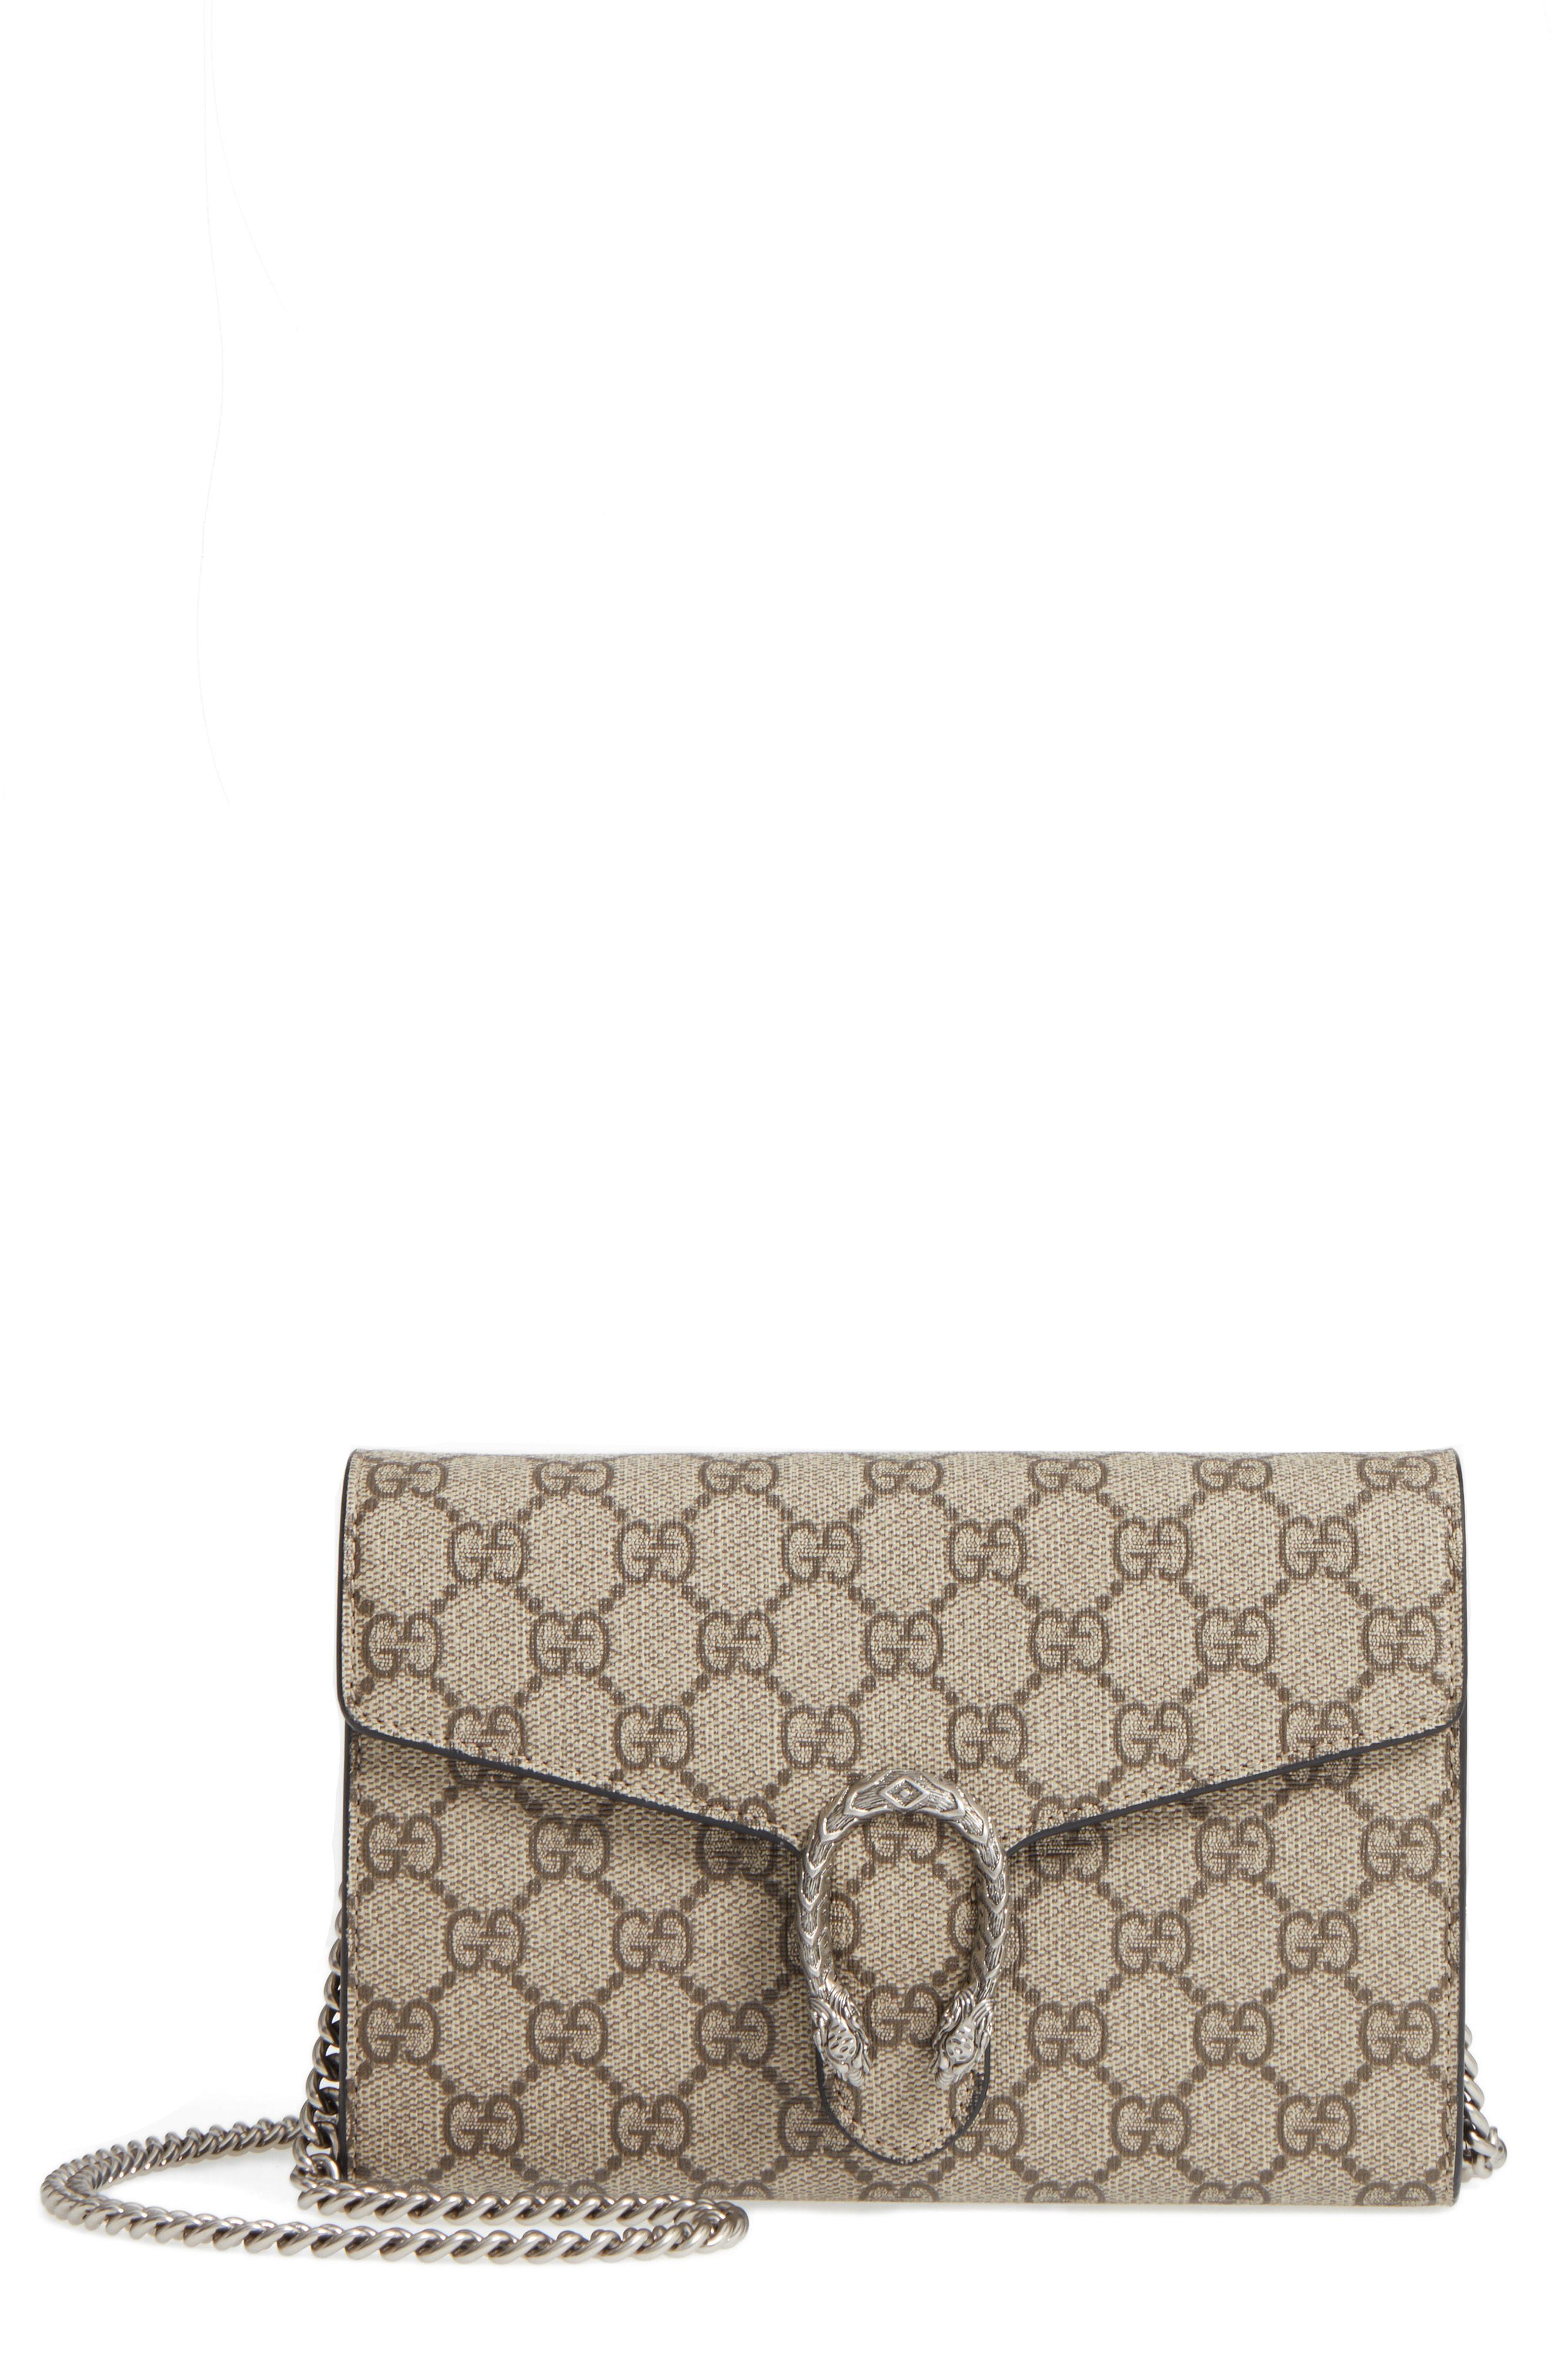 719cbe448d2 Lyst - Gucci Dionysus Gg Supreme Canvas Wallet On A Chain - in Metallic